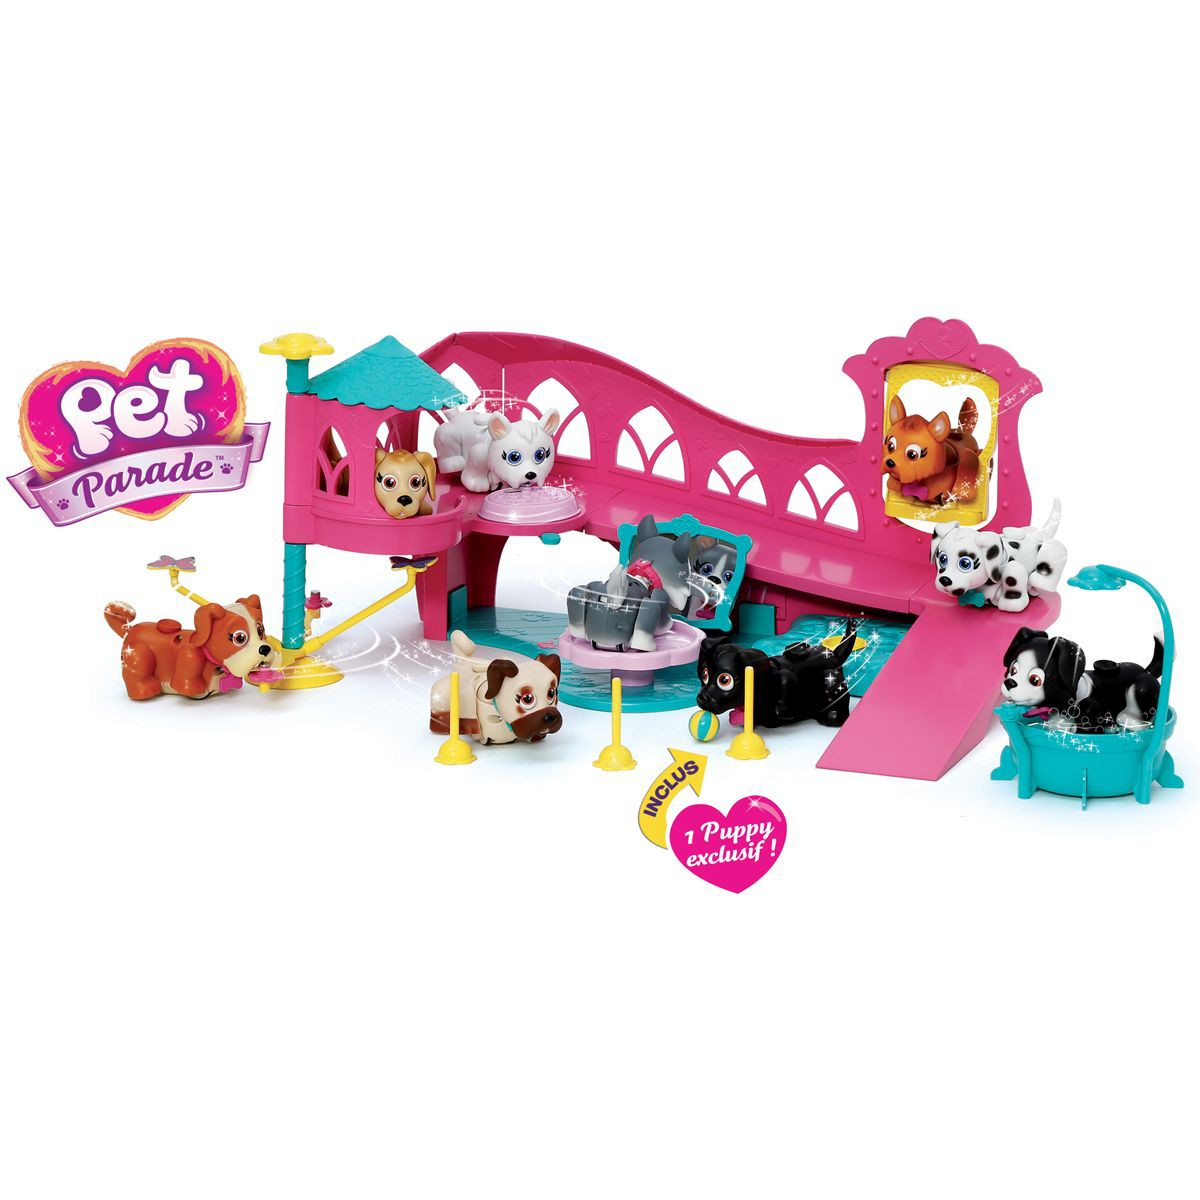 pet parade aire de jeu